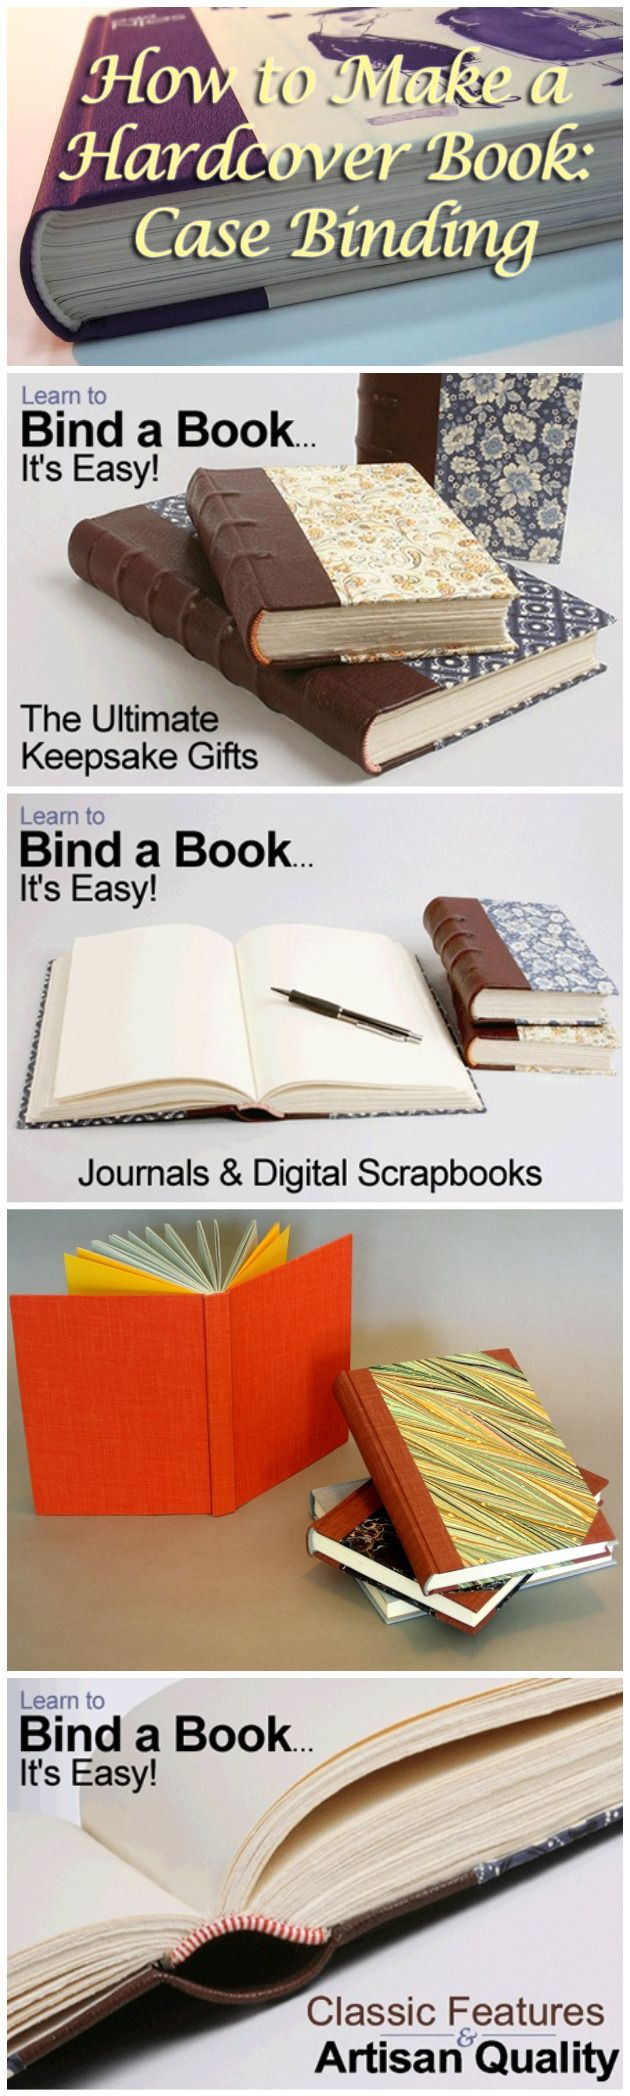 How To Make A Hardcover Book : How to make a hardcover book case binding everything